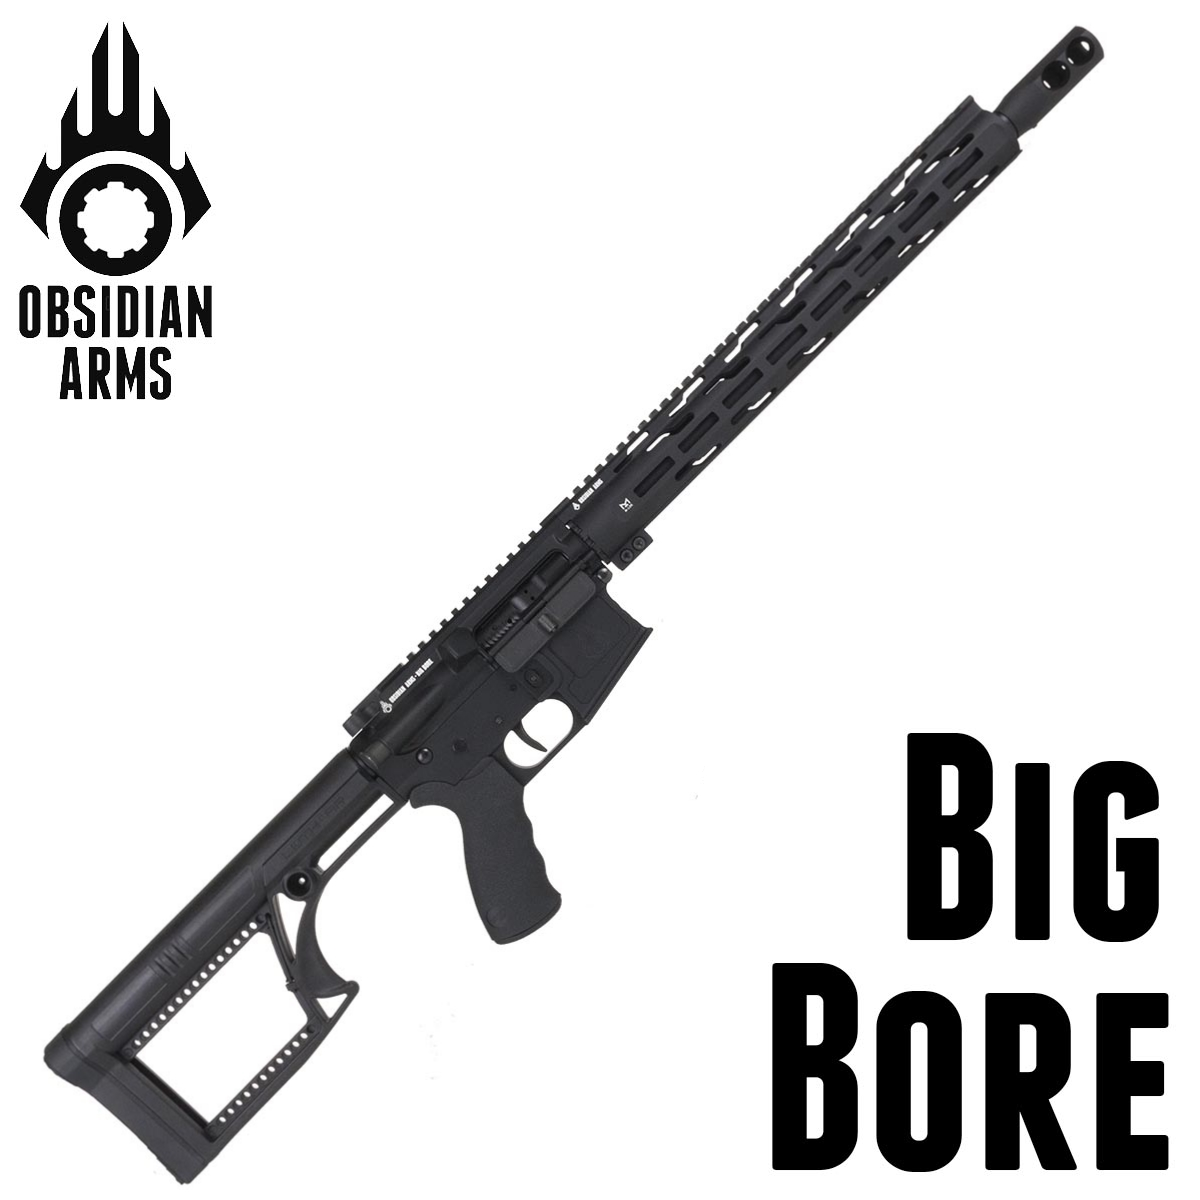 Obsidian Arms Big Bore Rifle